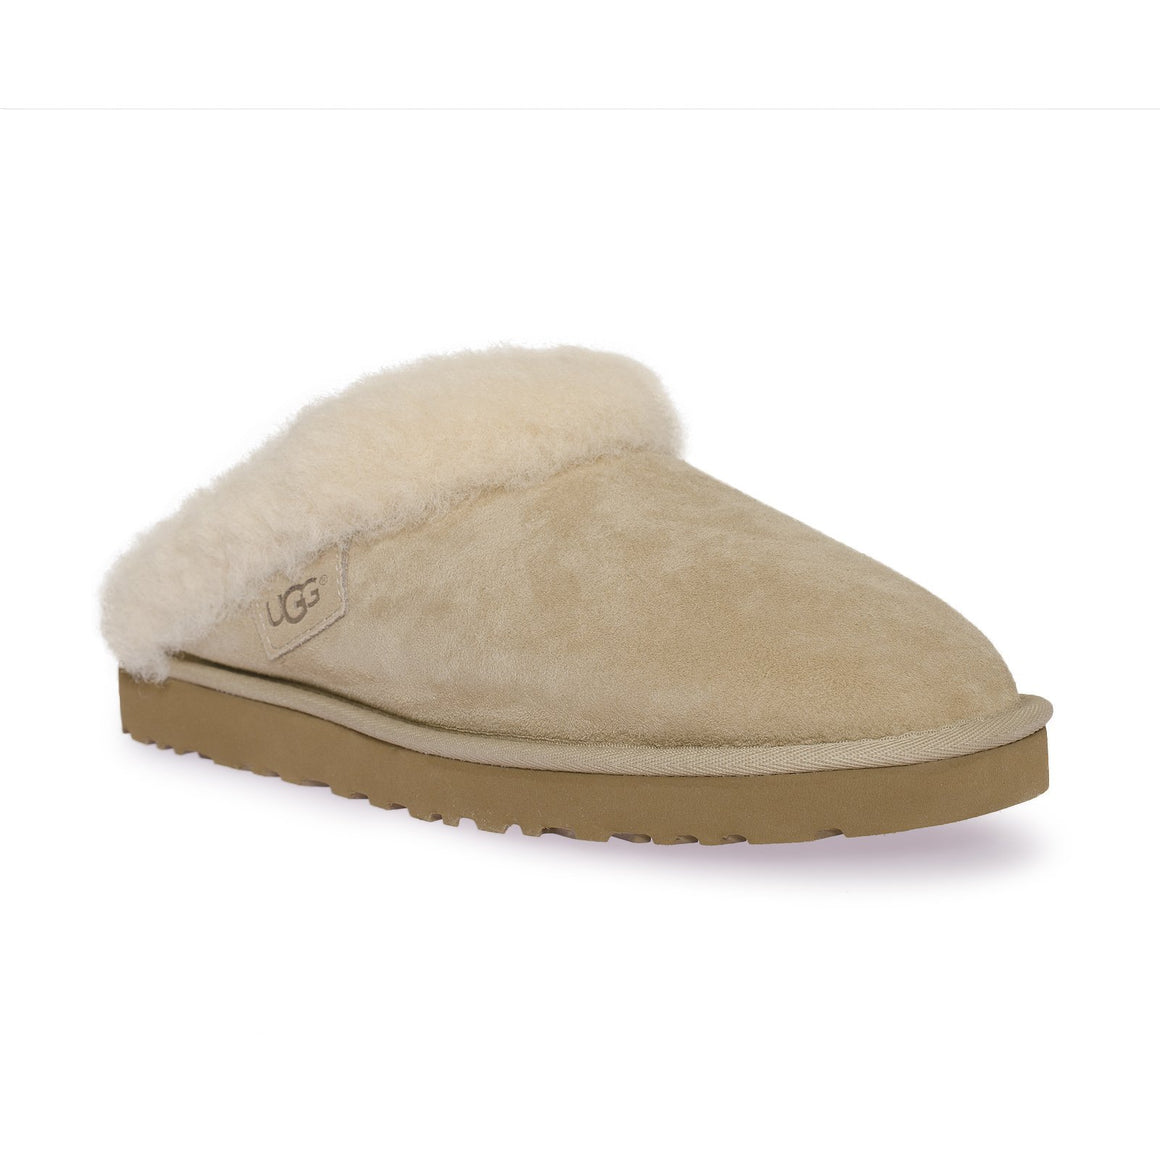 UGG Cluggette Sand Slippers - Women's